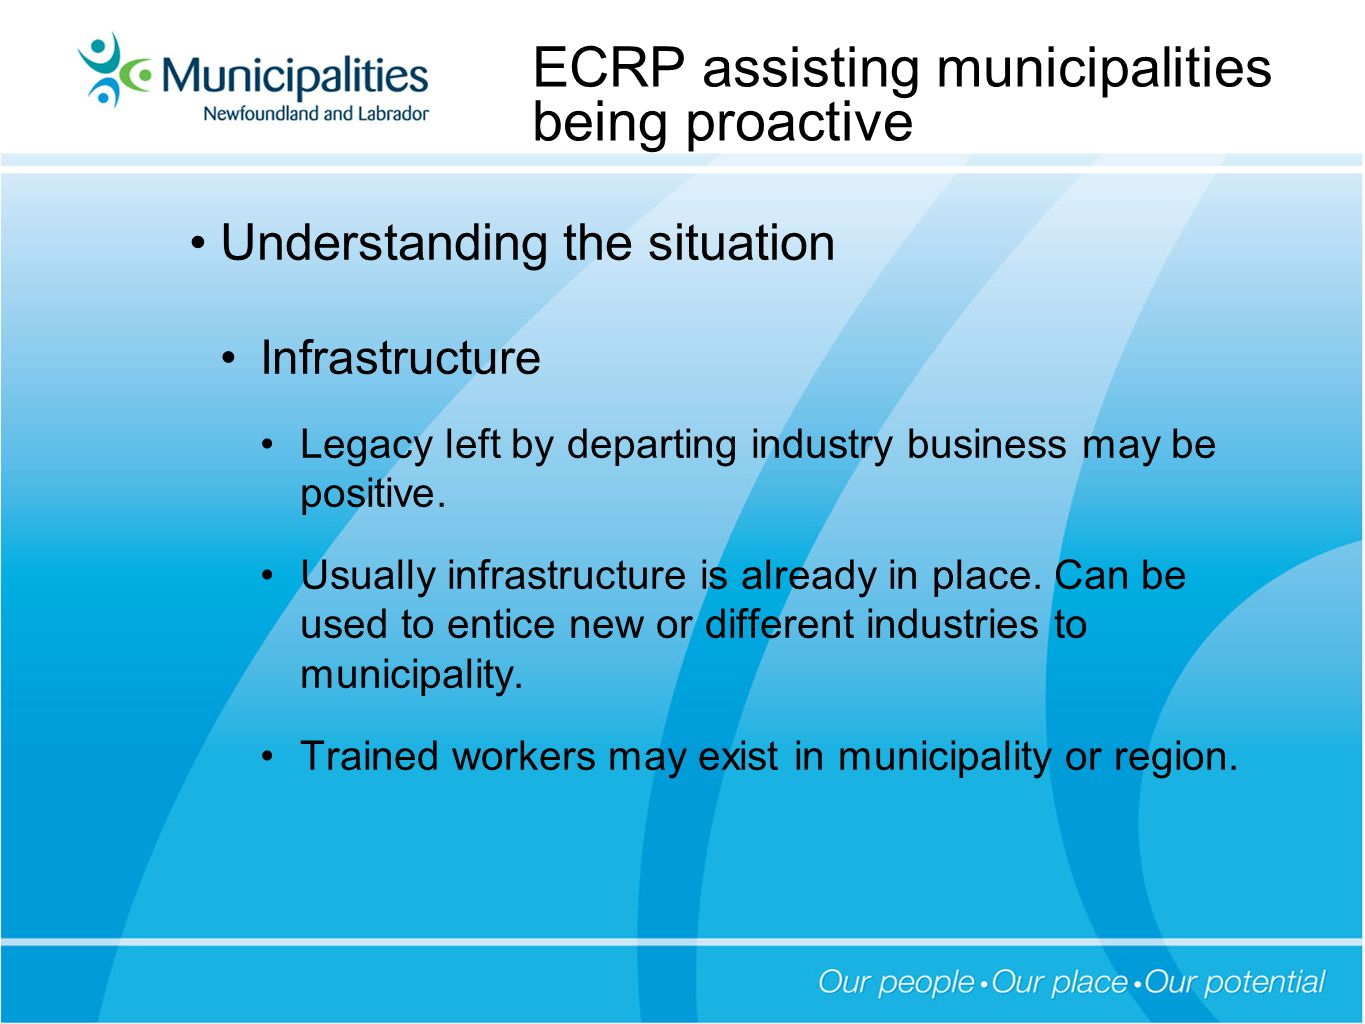 Understanding the situation Cost of not being proactive ECRP sets out the likely results for a municipality that does not have a succession plan in place to deal with the departure of industry or business Out-migration, declining property values, declining municipal revenue, loss of hope in the community Have seen this happen across the province over the past 20 years.